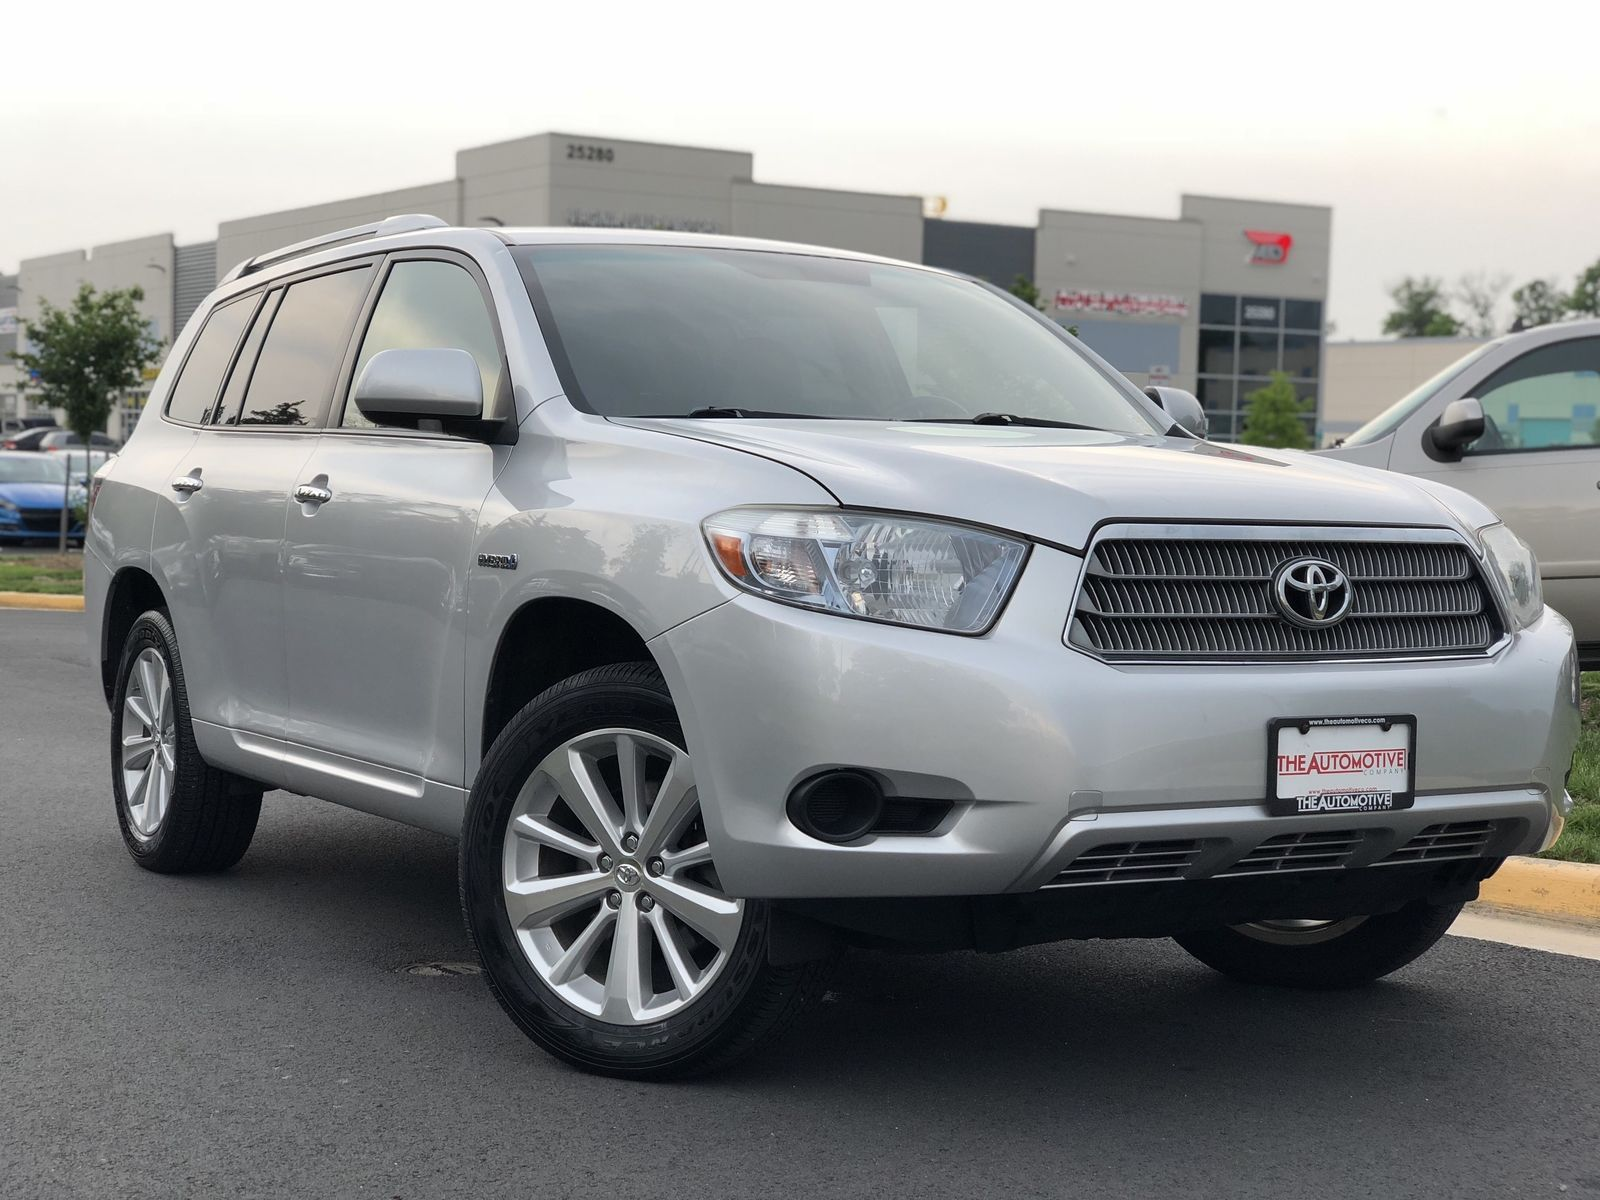 Cool Awesome Highlander 2008 Toyota Highlander Hybrid 4x4 1 Owner Leather Seats 6 Month Warranty Toyota Highlander Hybrid Toyota Highlander Leather Seat